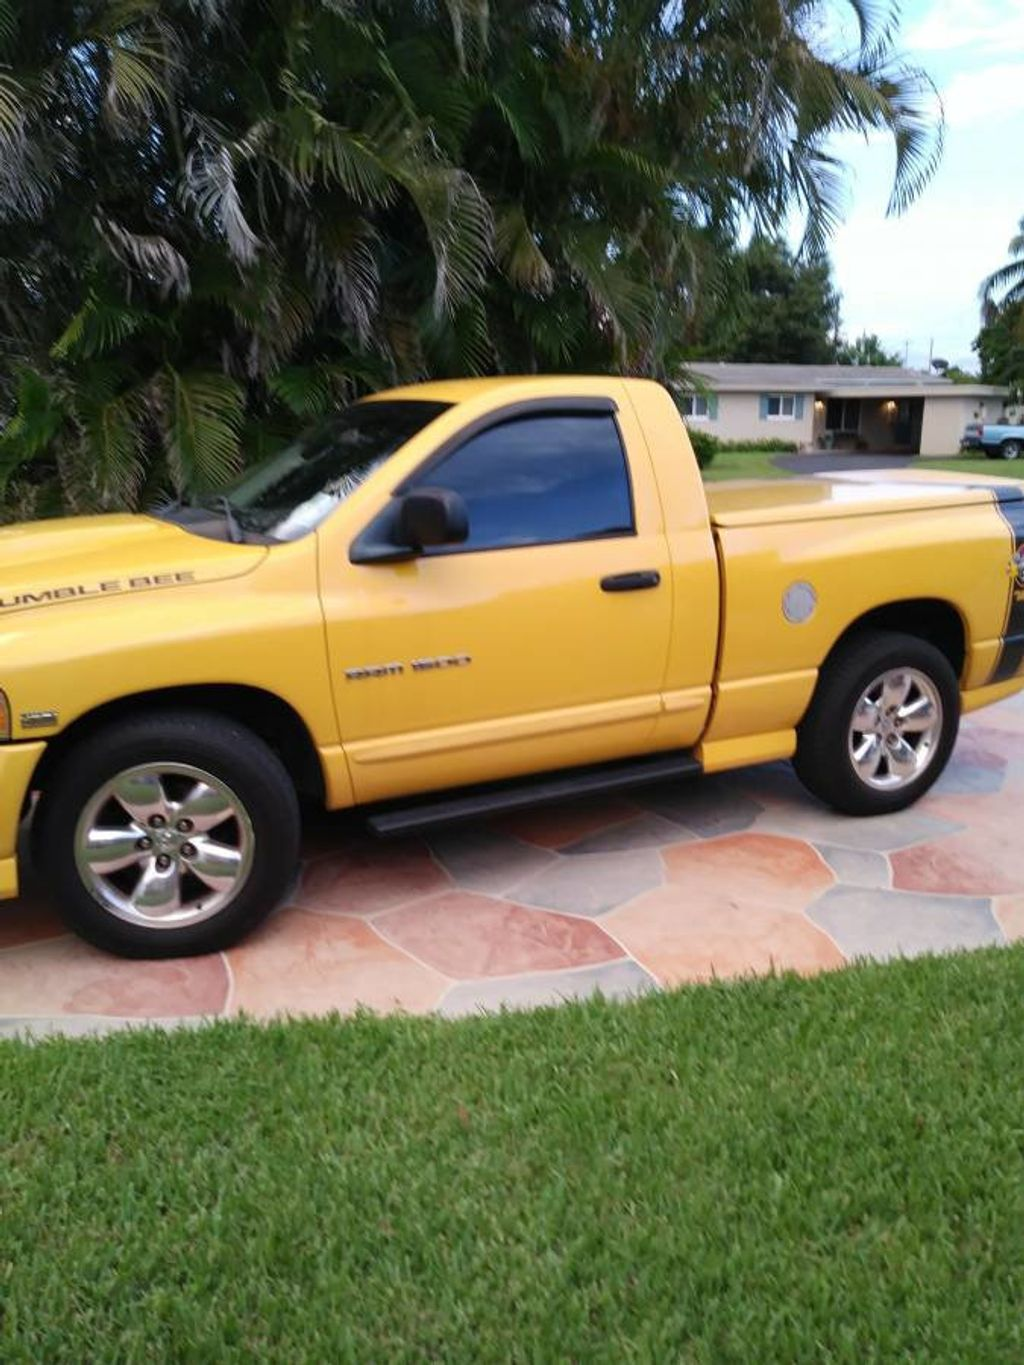 2005 used dodge ram 1500 rumble bee limited edition for. Black Bedroom Furniture Sets. Home Design Ideas